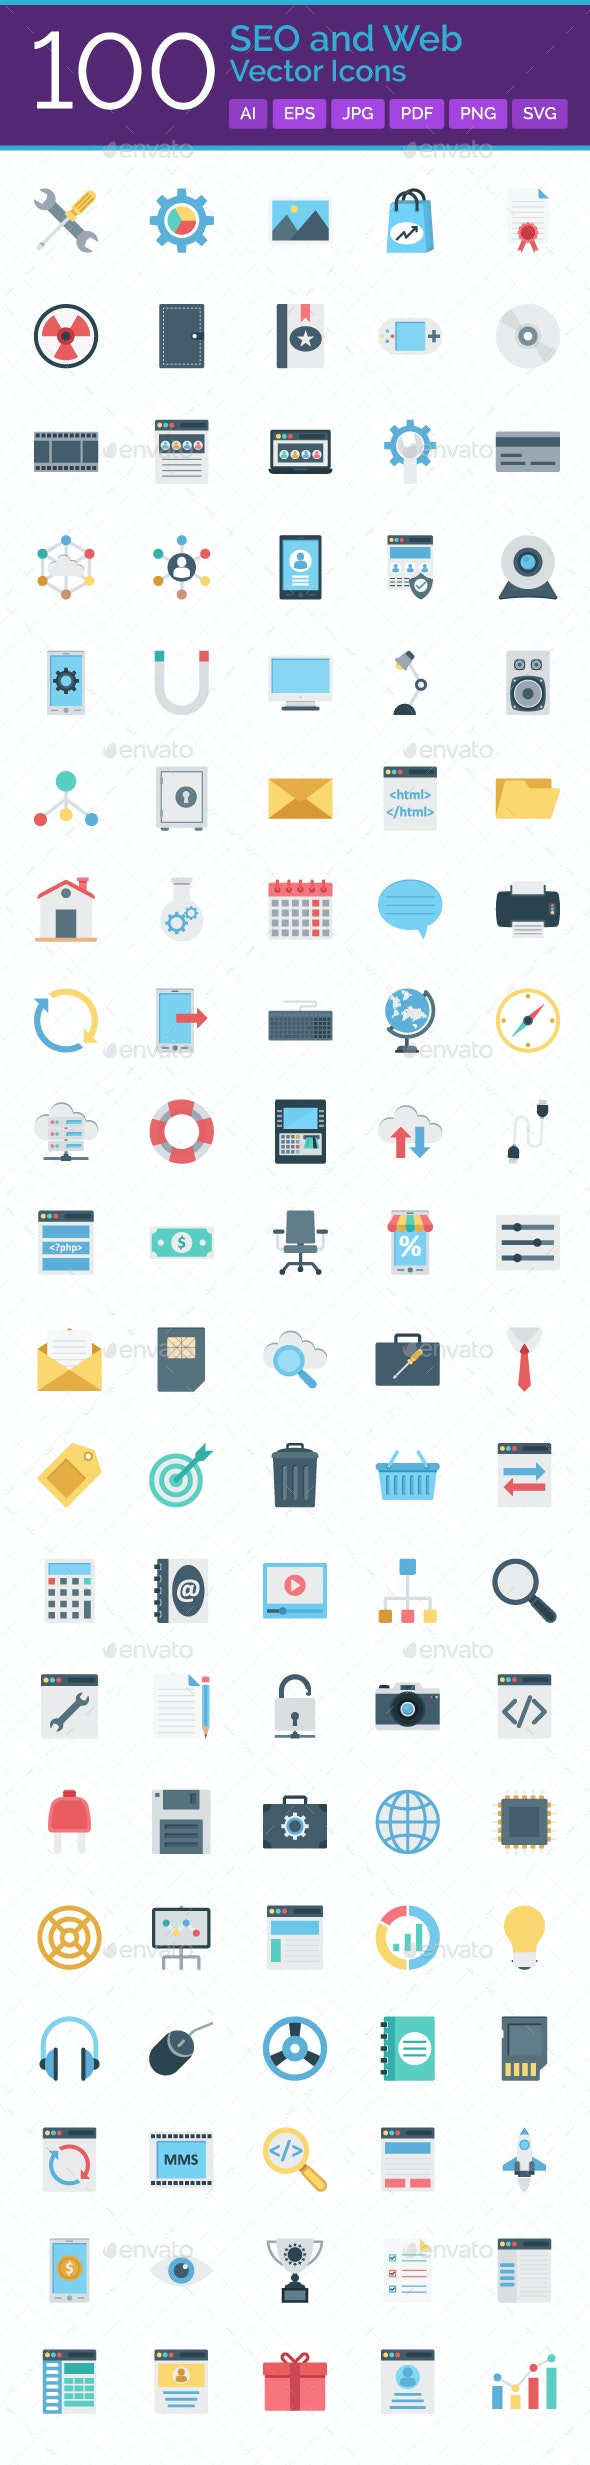 100 SEO And Web Vector Icons - Icons